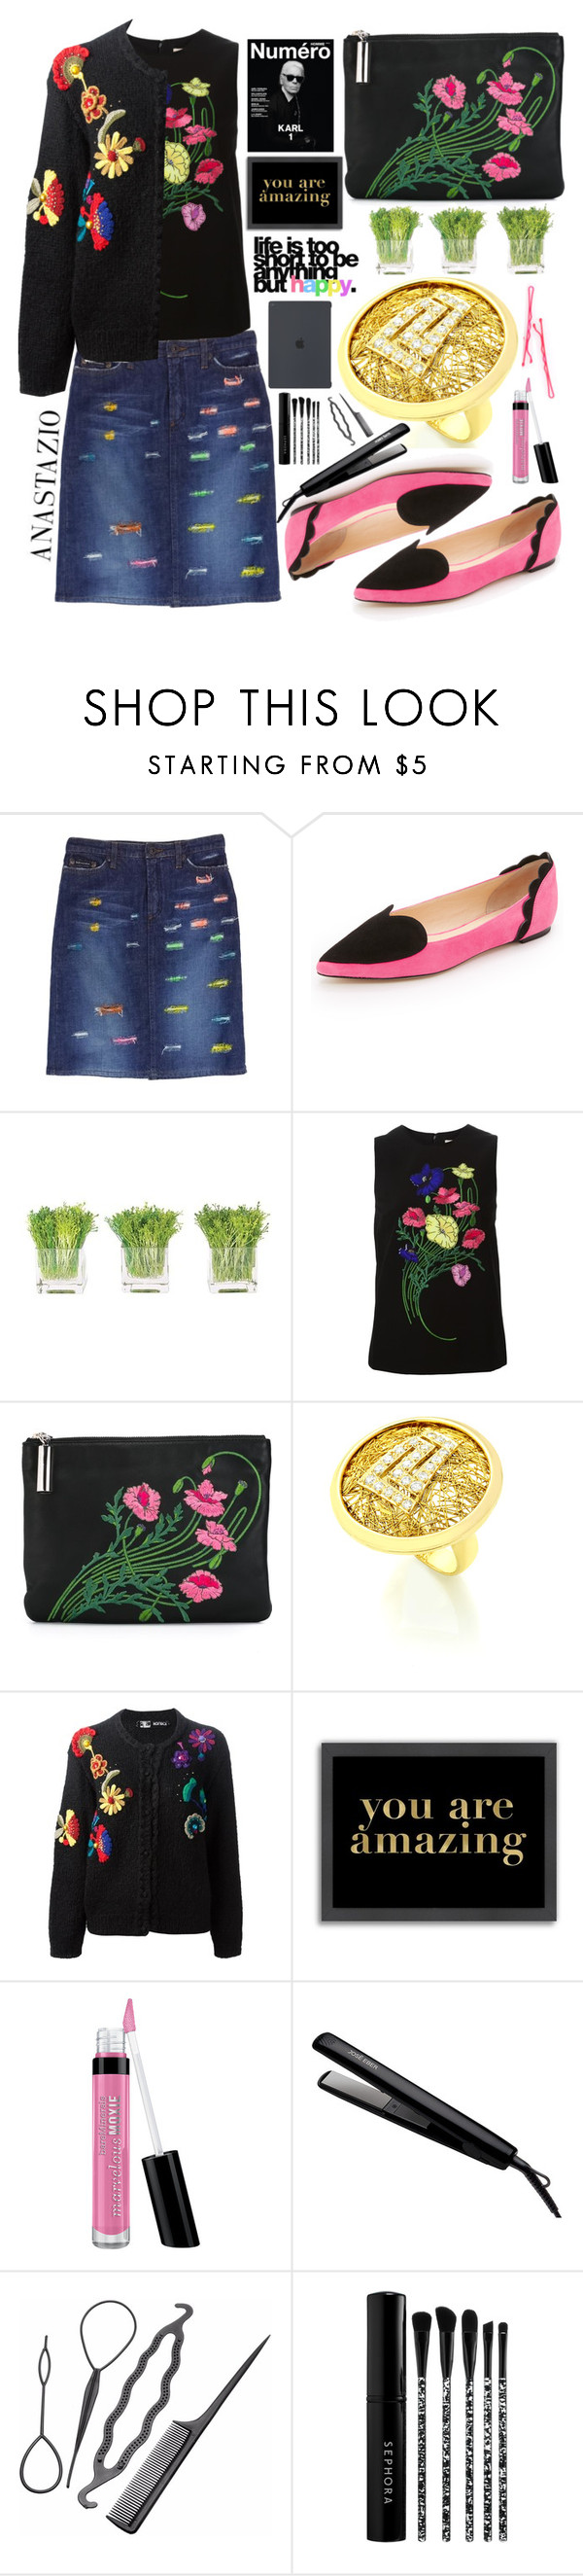 """Anastazio-Winter to Spring"" by anastazio-kotsopoulos ❤ liked on Polyvore featuring Dolce&Gabbana, Isa Tapia, NDI, Christopher Kane, Kansai Yamamoto, Americanflat, Bare Escentuals, José Eber and Sephora Collection"